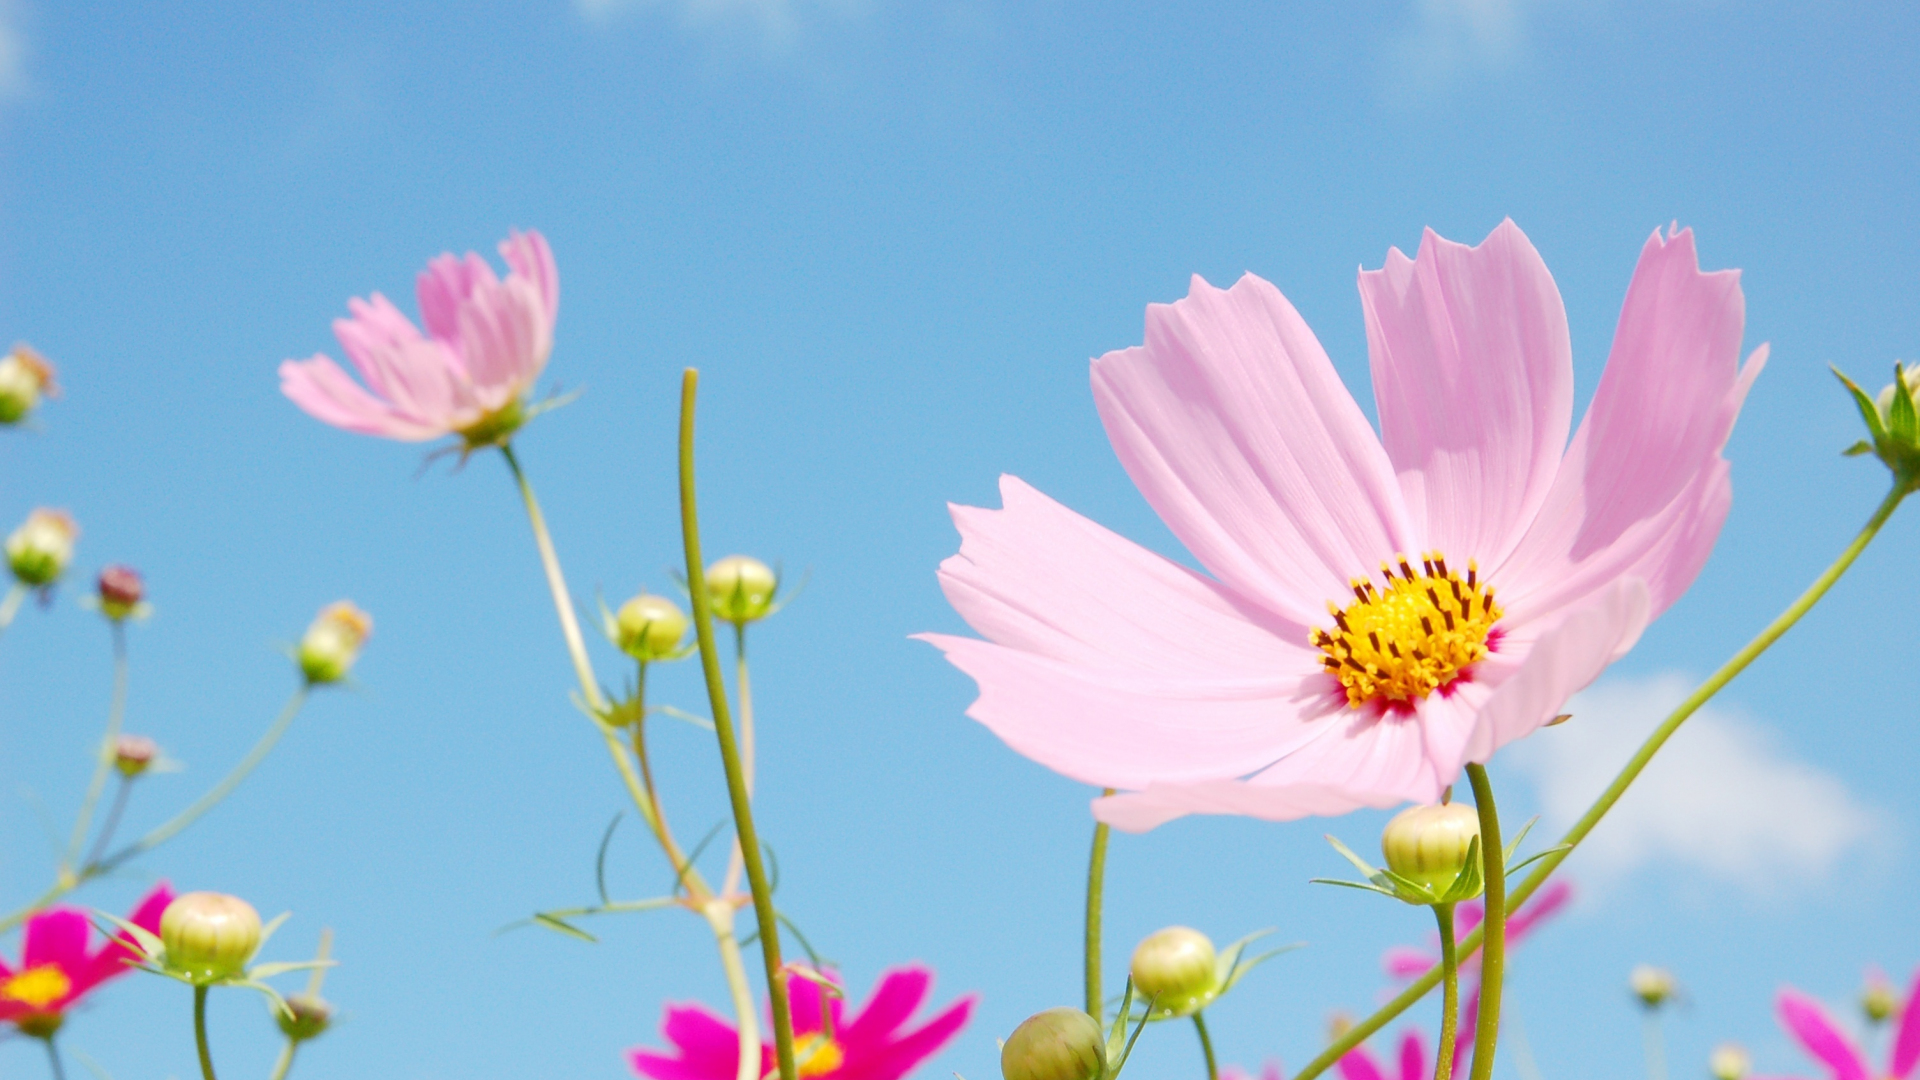 download 1920x1080 wallpaper meadow flowers blossom pink cosmos